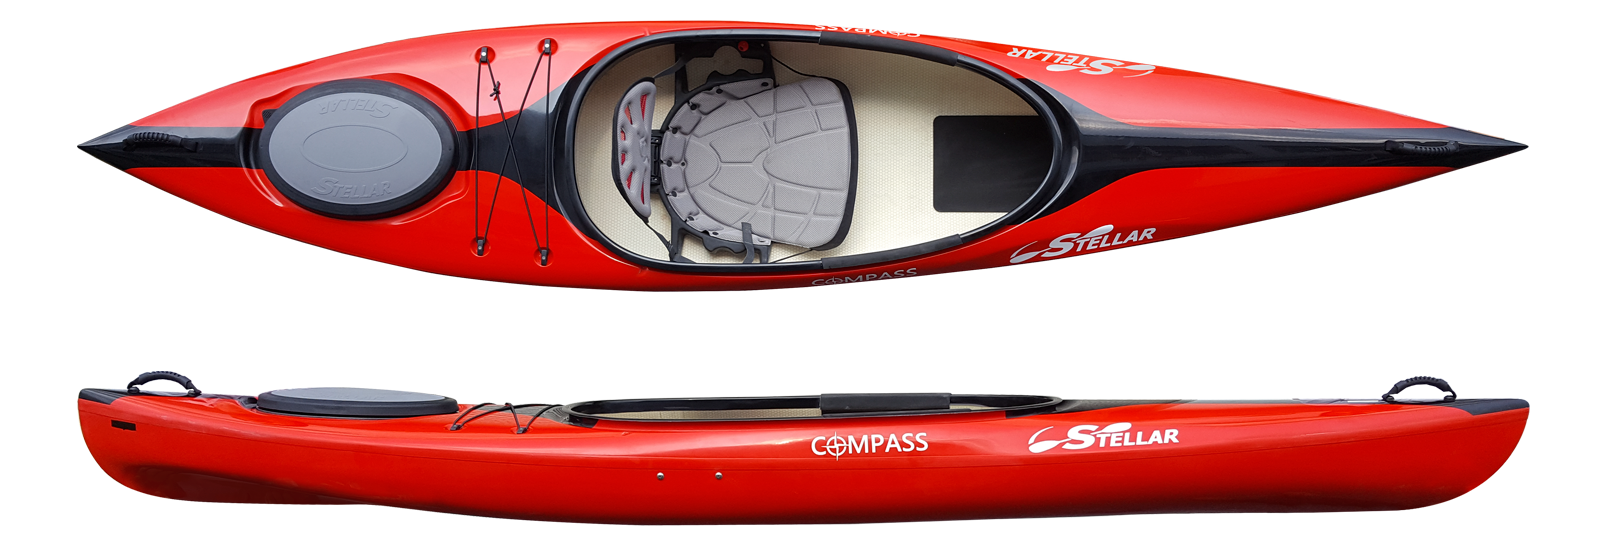 Kayaks: Compass 115 by Stellar Kayaks - Image 2581